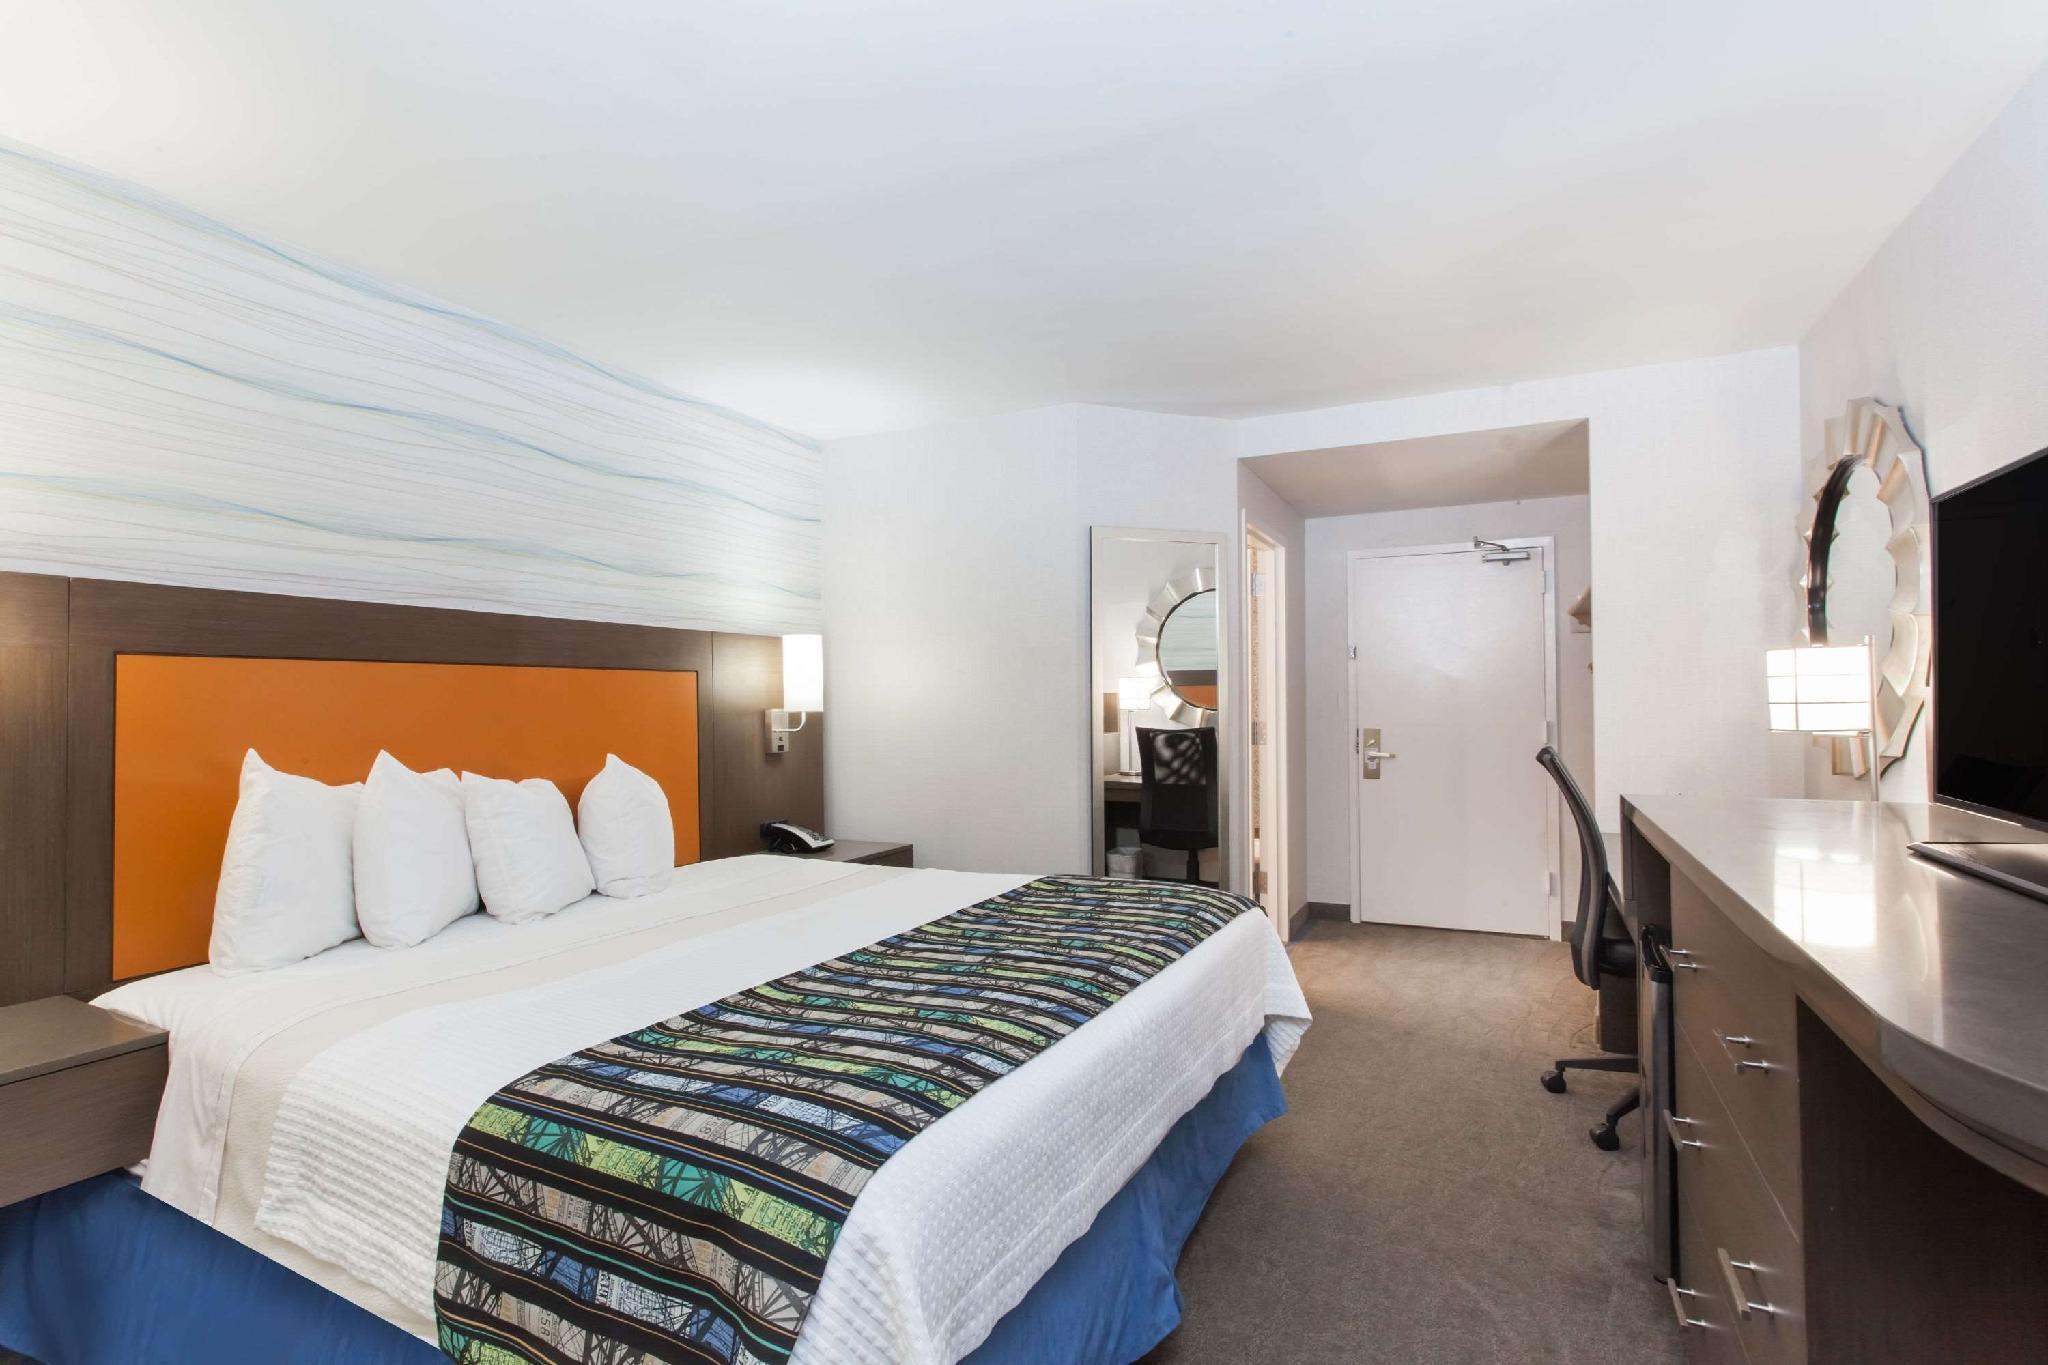 1 Queen Bed, Mobility Accessible Room, Smoke Free